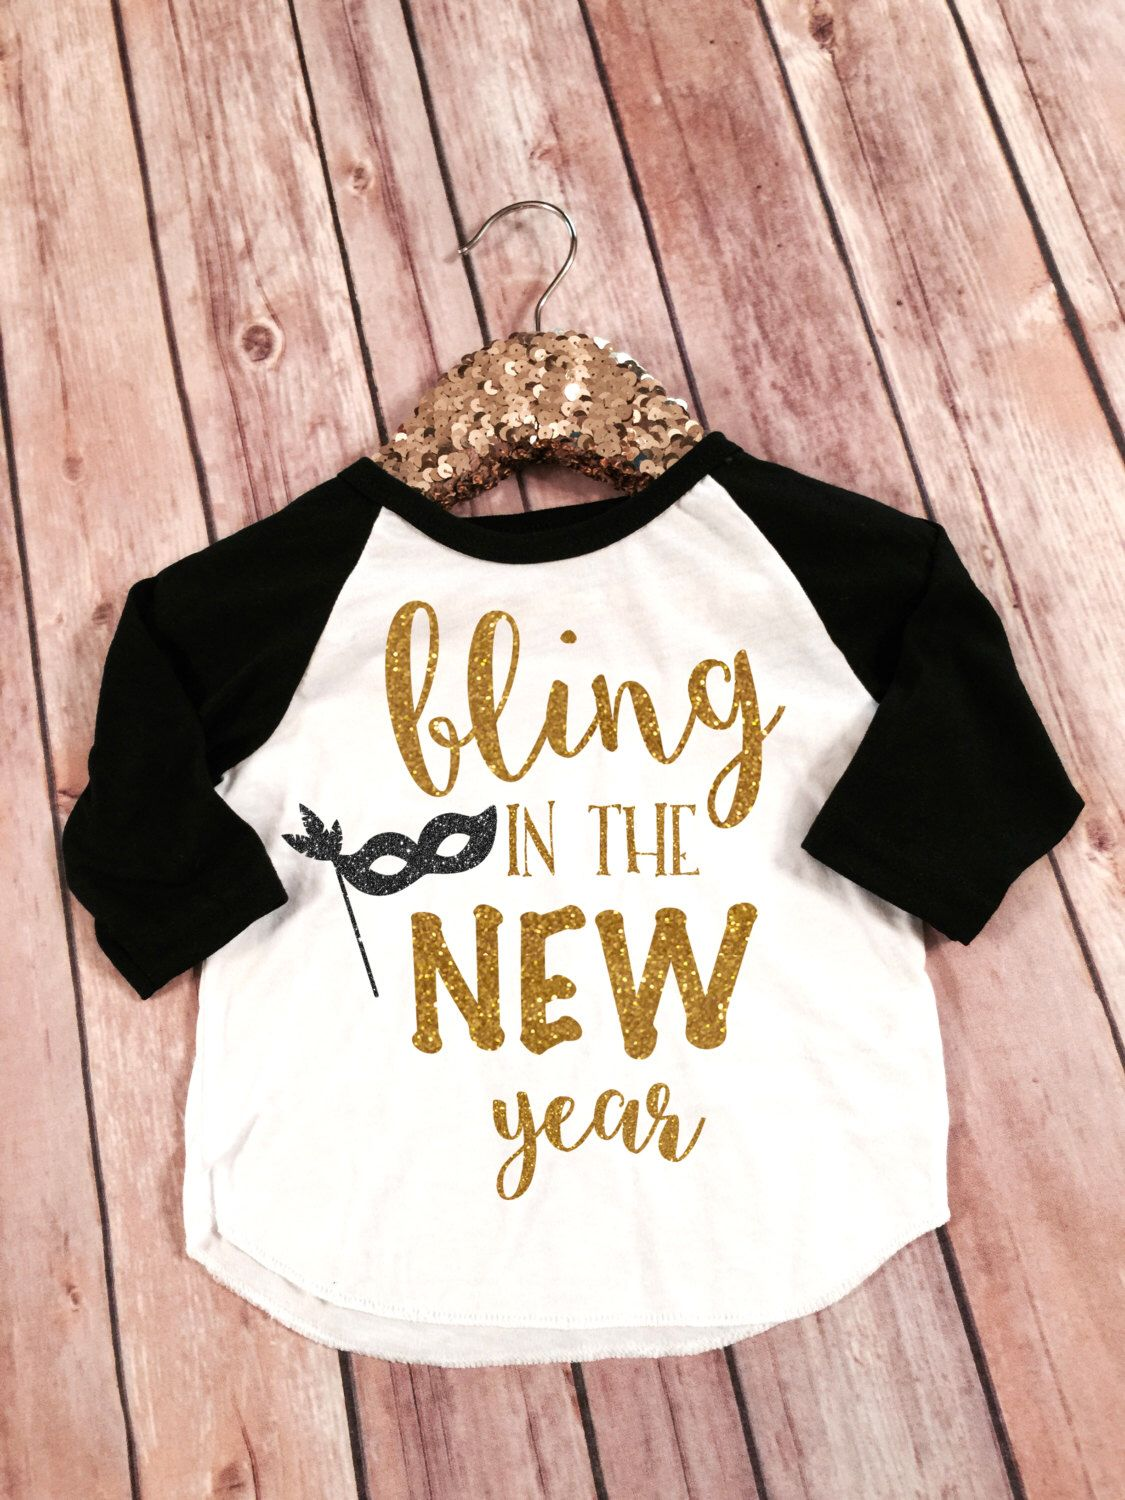 Bling in the New Year, New Years Shirt, 2020 New Year